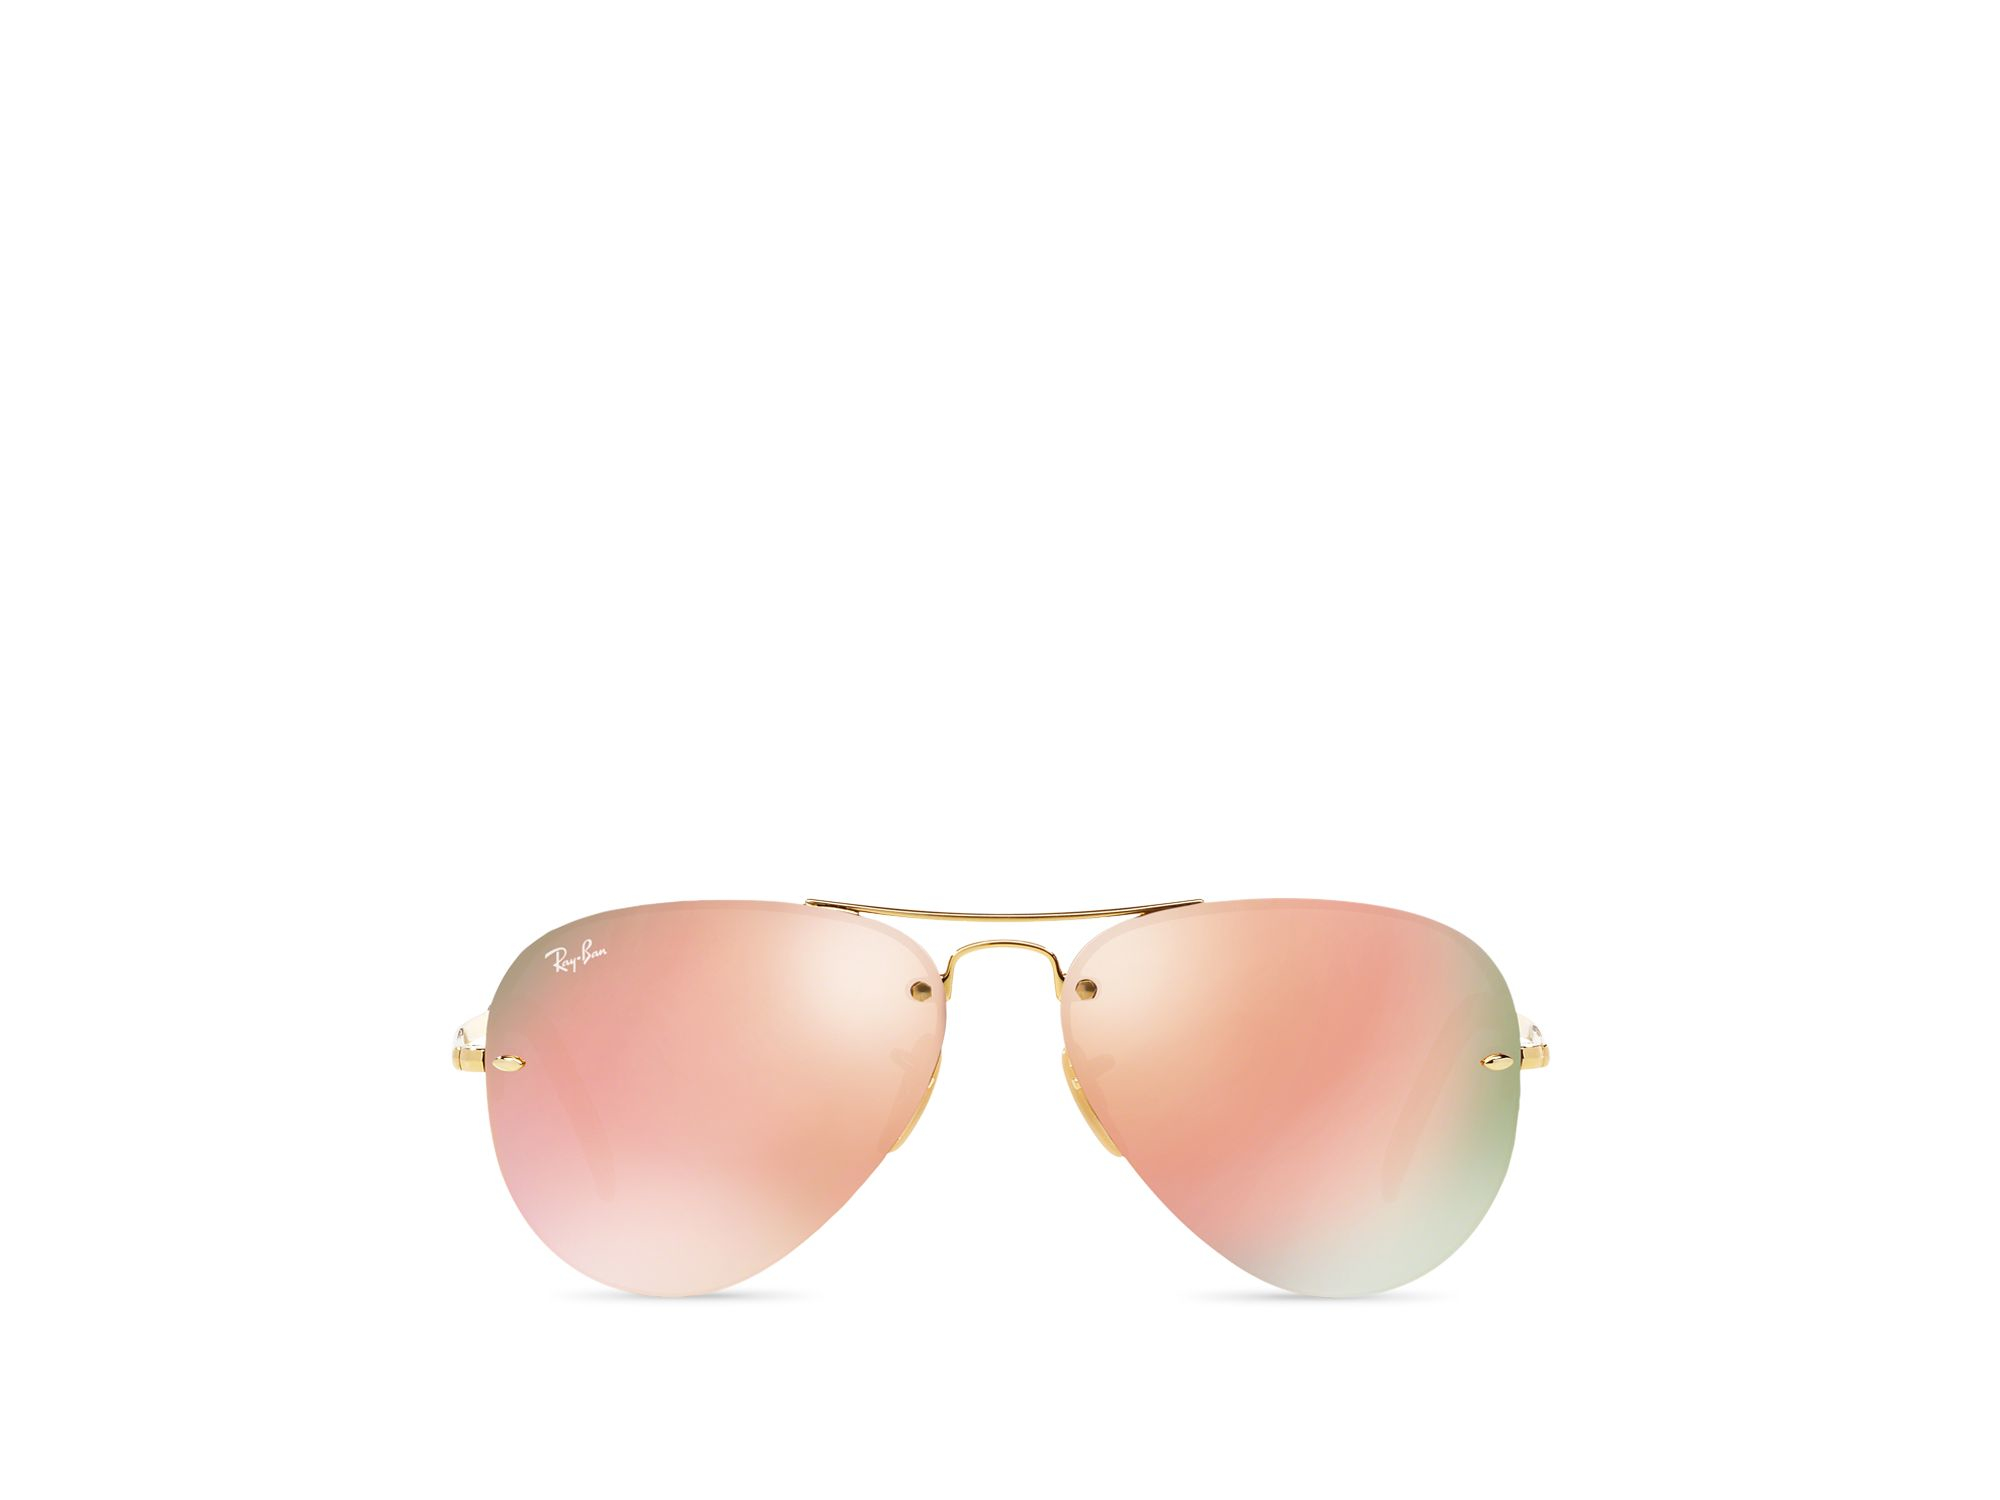 mirrored aviator sunglasses l7py  Gallery Previously sold at: Bloomingdale's 路 Women's Mirrored Sunglasses